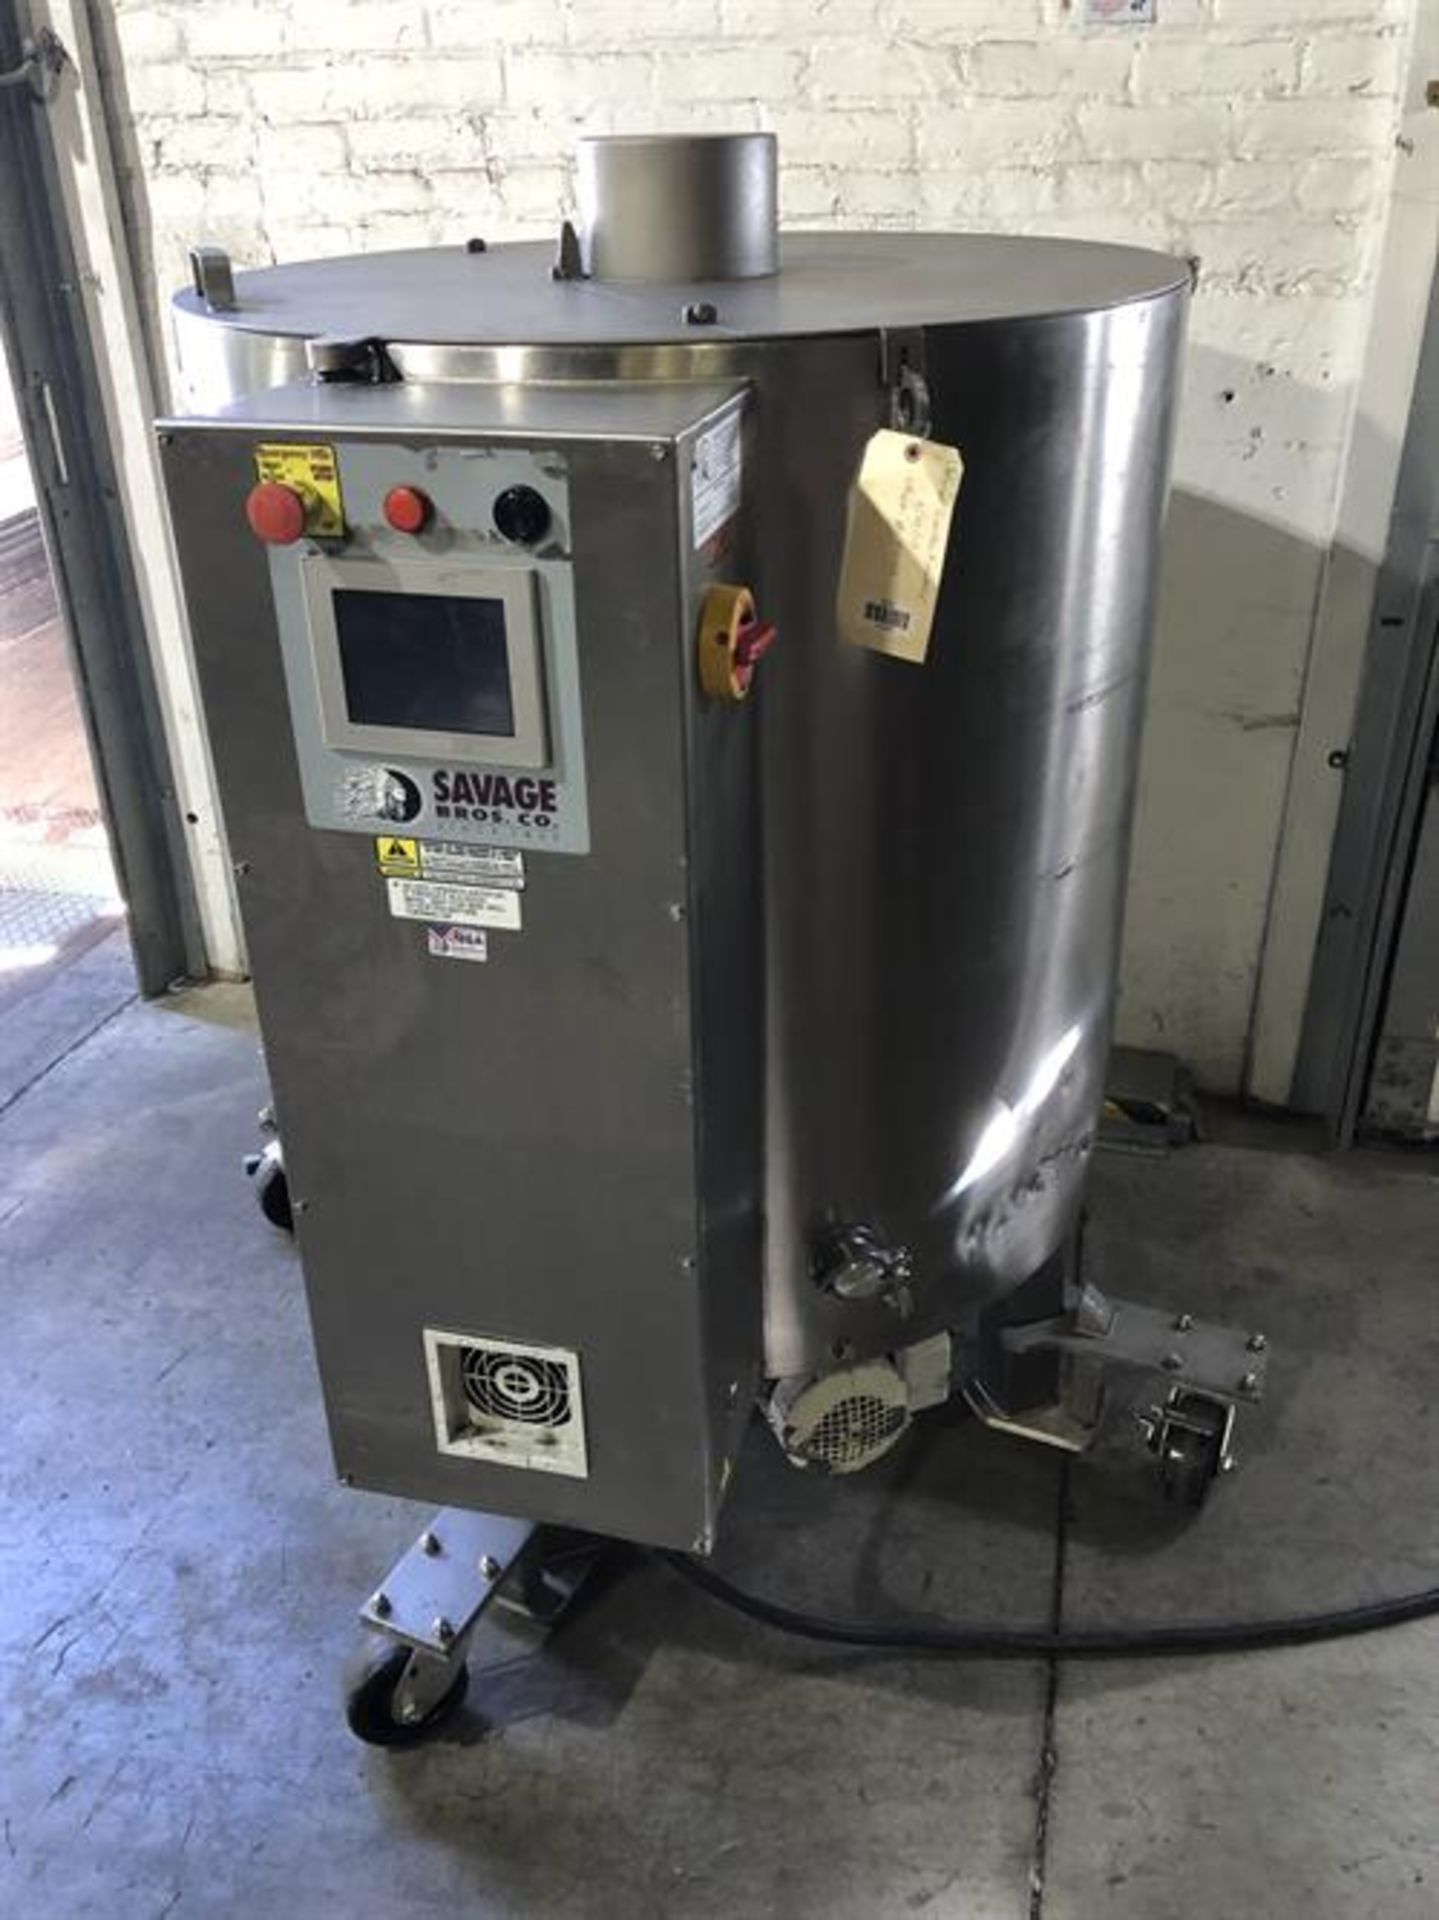 Savage 1250-lb Stainless Steel Chocolate Melter - model 0974-36, with PLC touchscreen controls - - Image 6 of 8